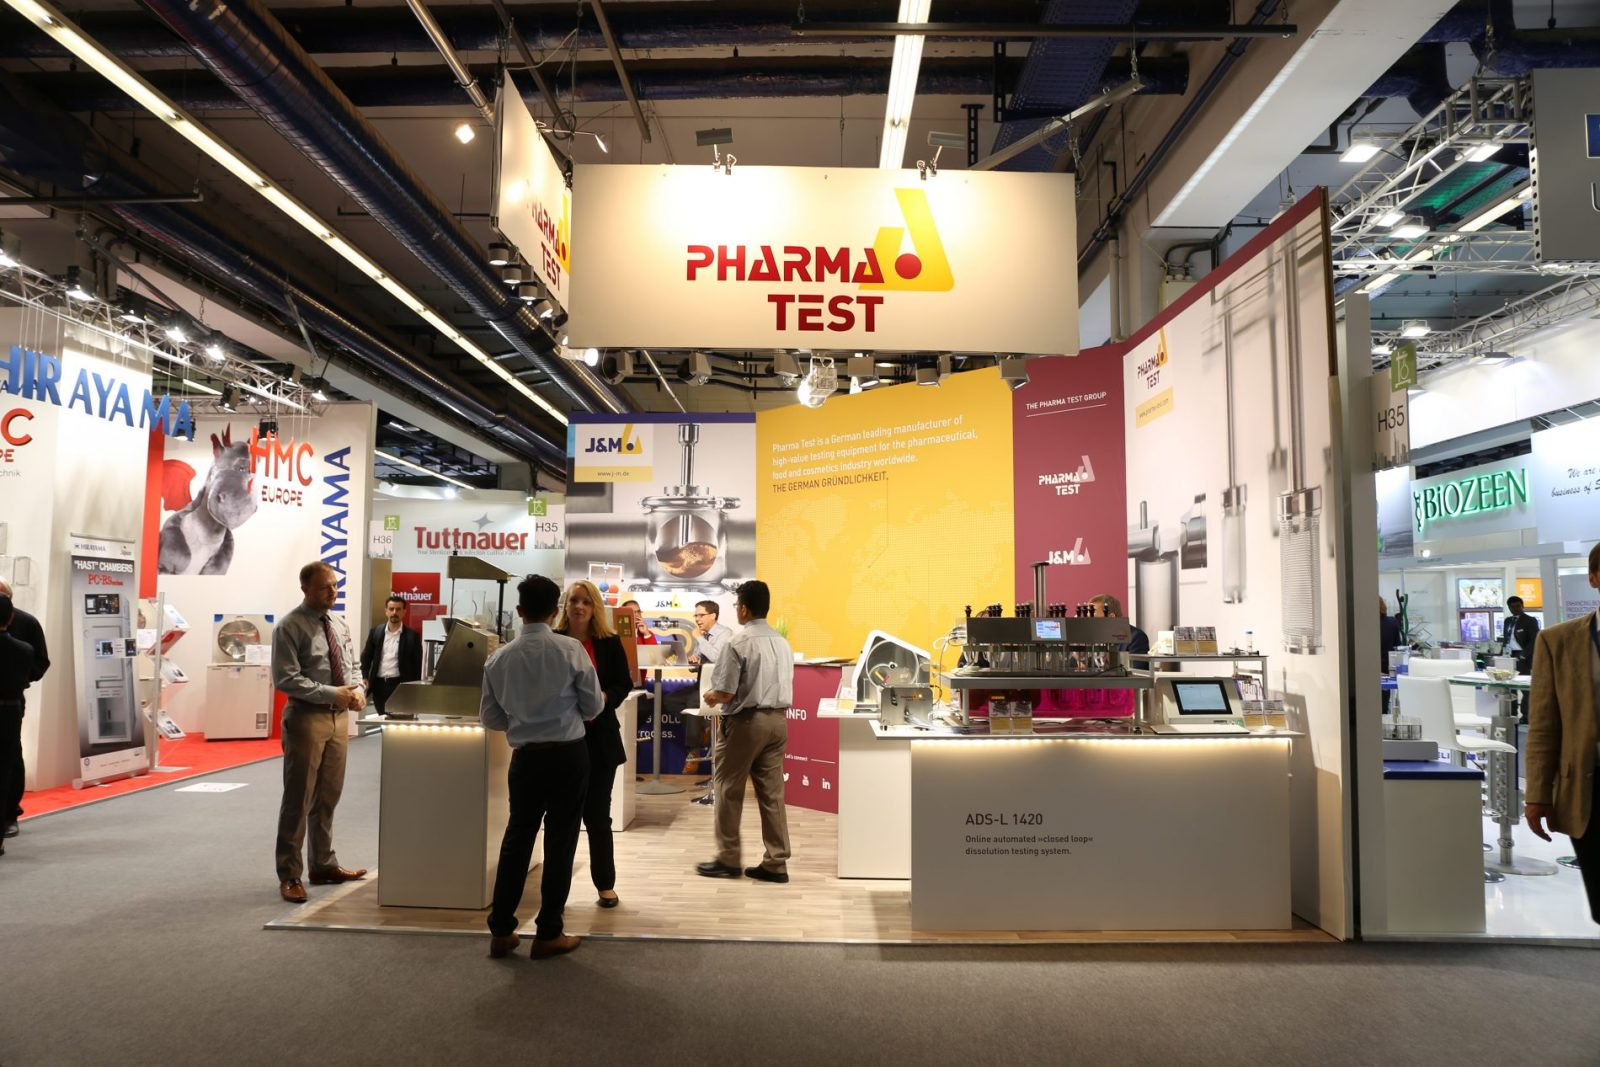 A calm before the storm moment on the new looking Pharma Test booth!